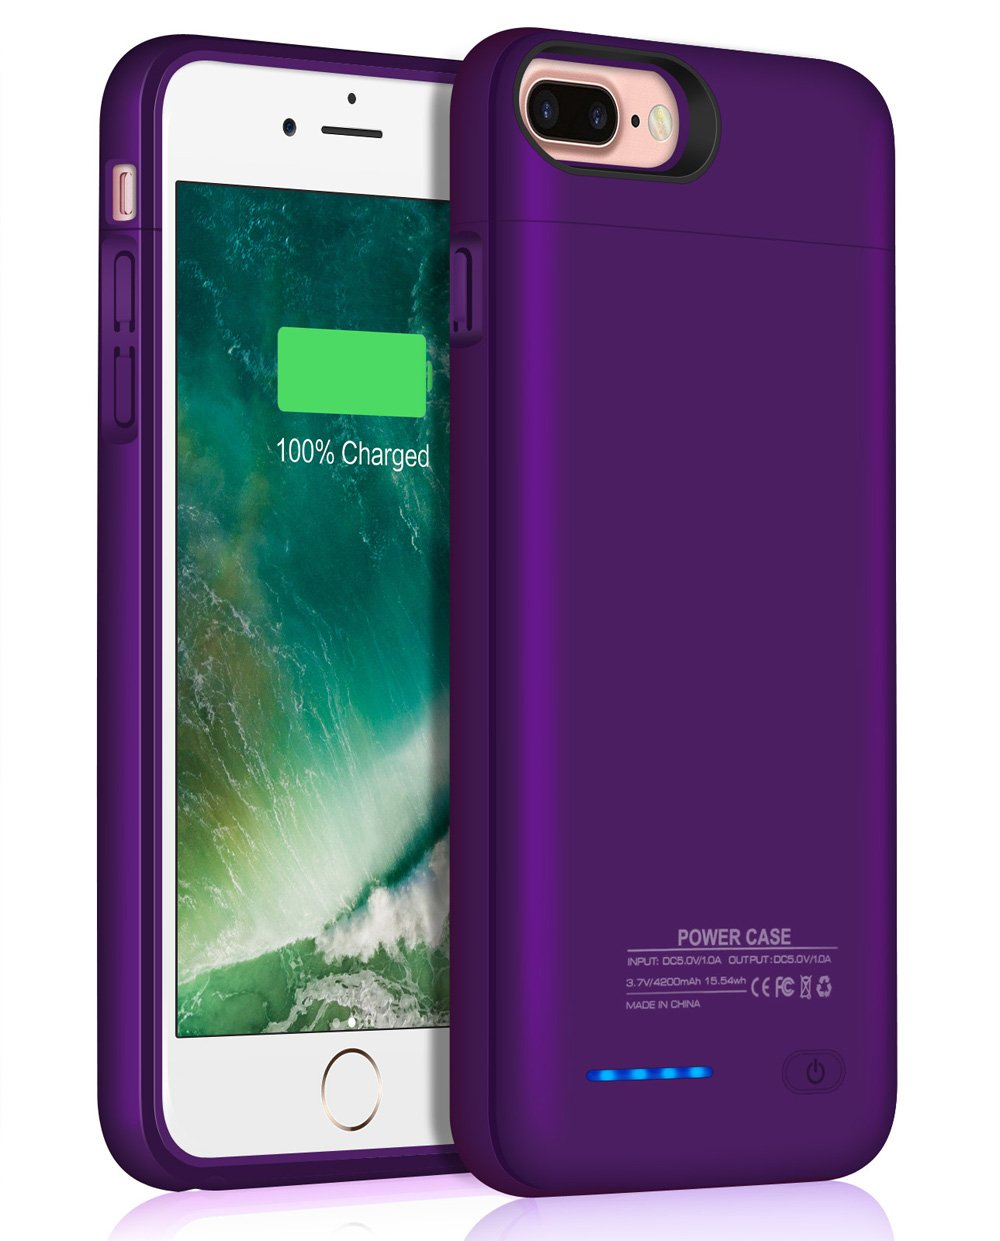 Iphone 8 Plus/7 Plus Battery Case/Juboty 4200m Ah Slim Rechargable Protective Portable Charging Case For Iphone 8 Plus/7 Plus Juice Power Bank Battery Charger Case by Juboty